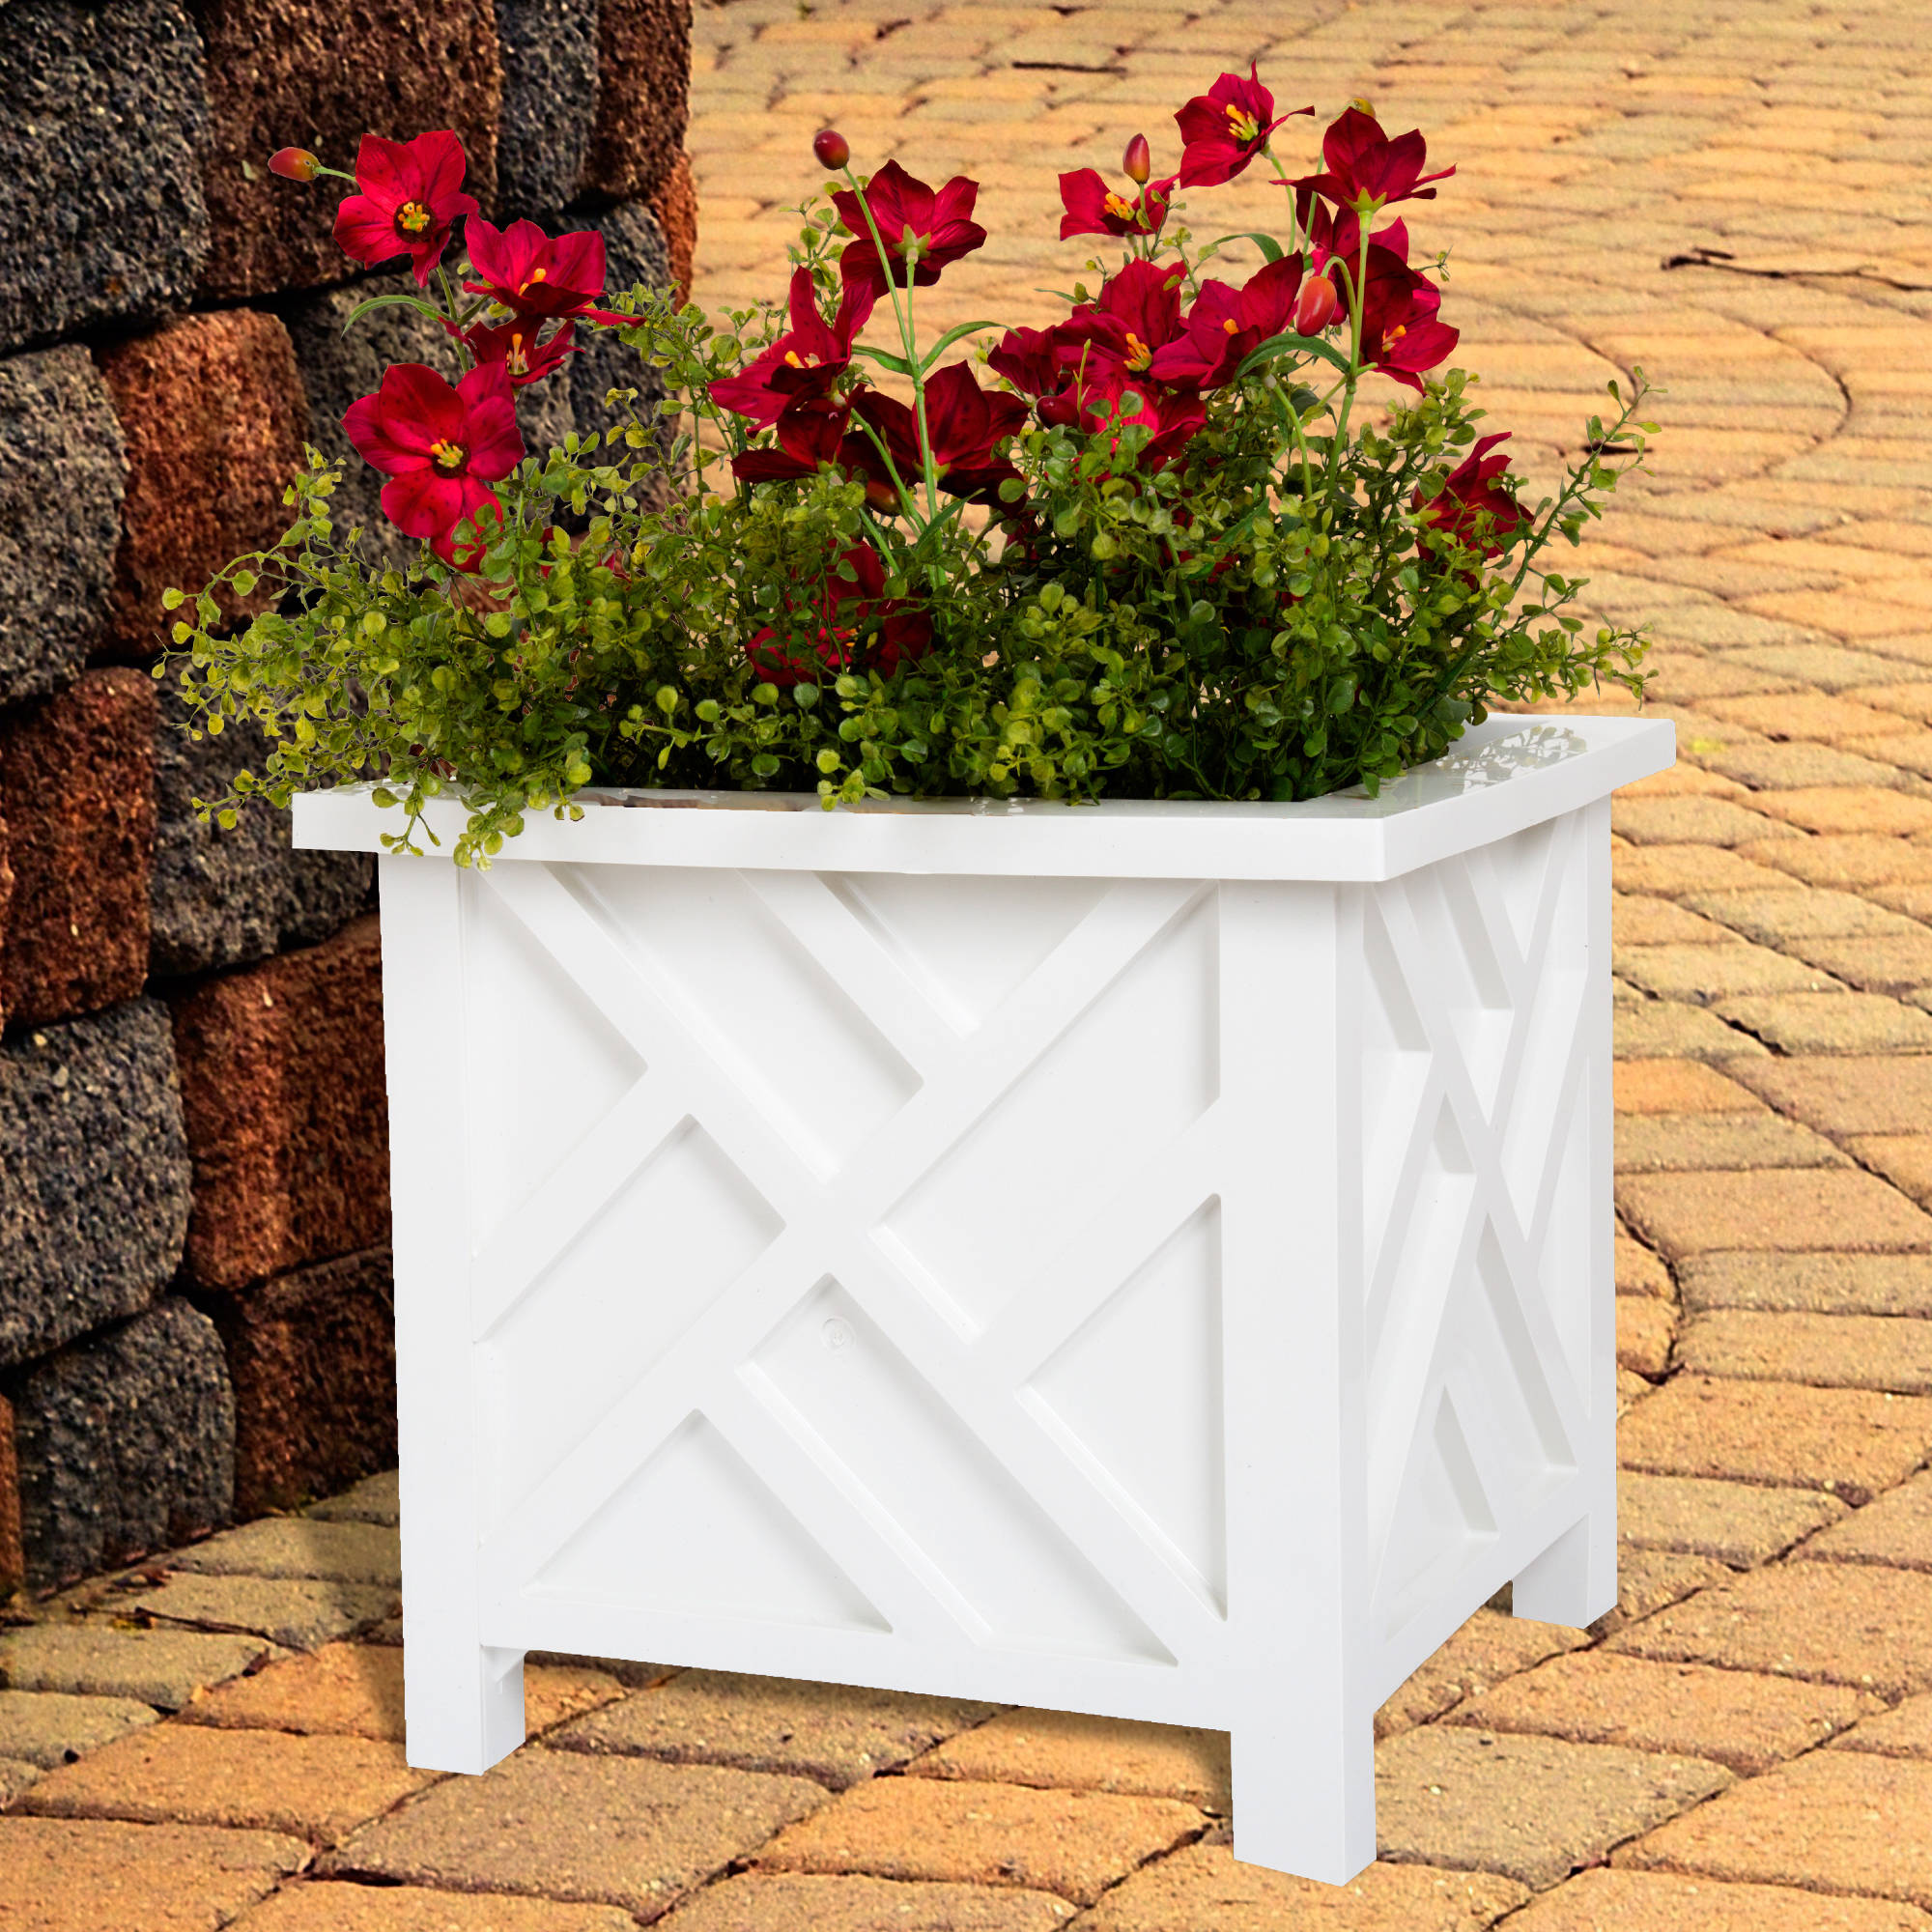 Plant Holder U2013 Planter Container Box For Garden, Patio, And Lawn U2013 Outdoor  Decor